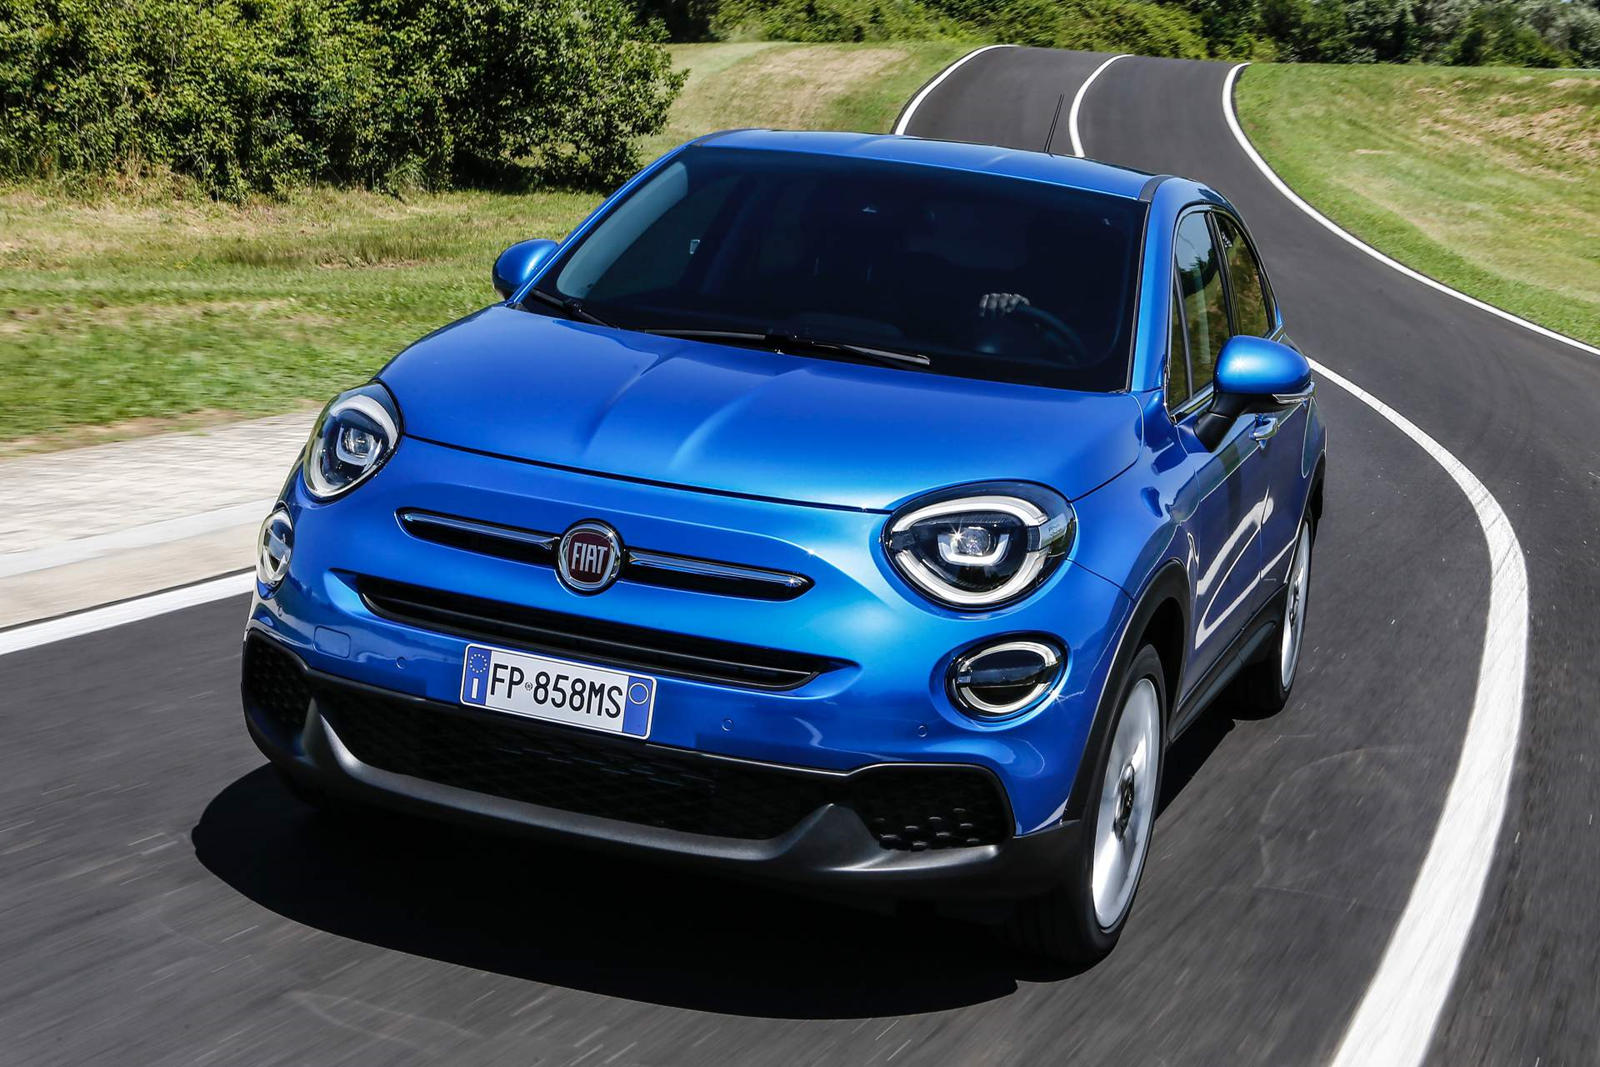 2019 Fiat 500x Revealed With Familiar Styling And New Turbo